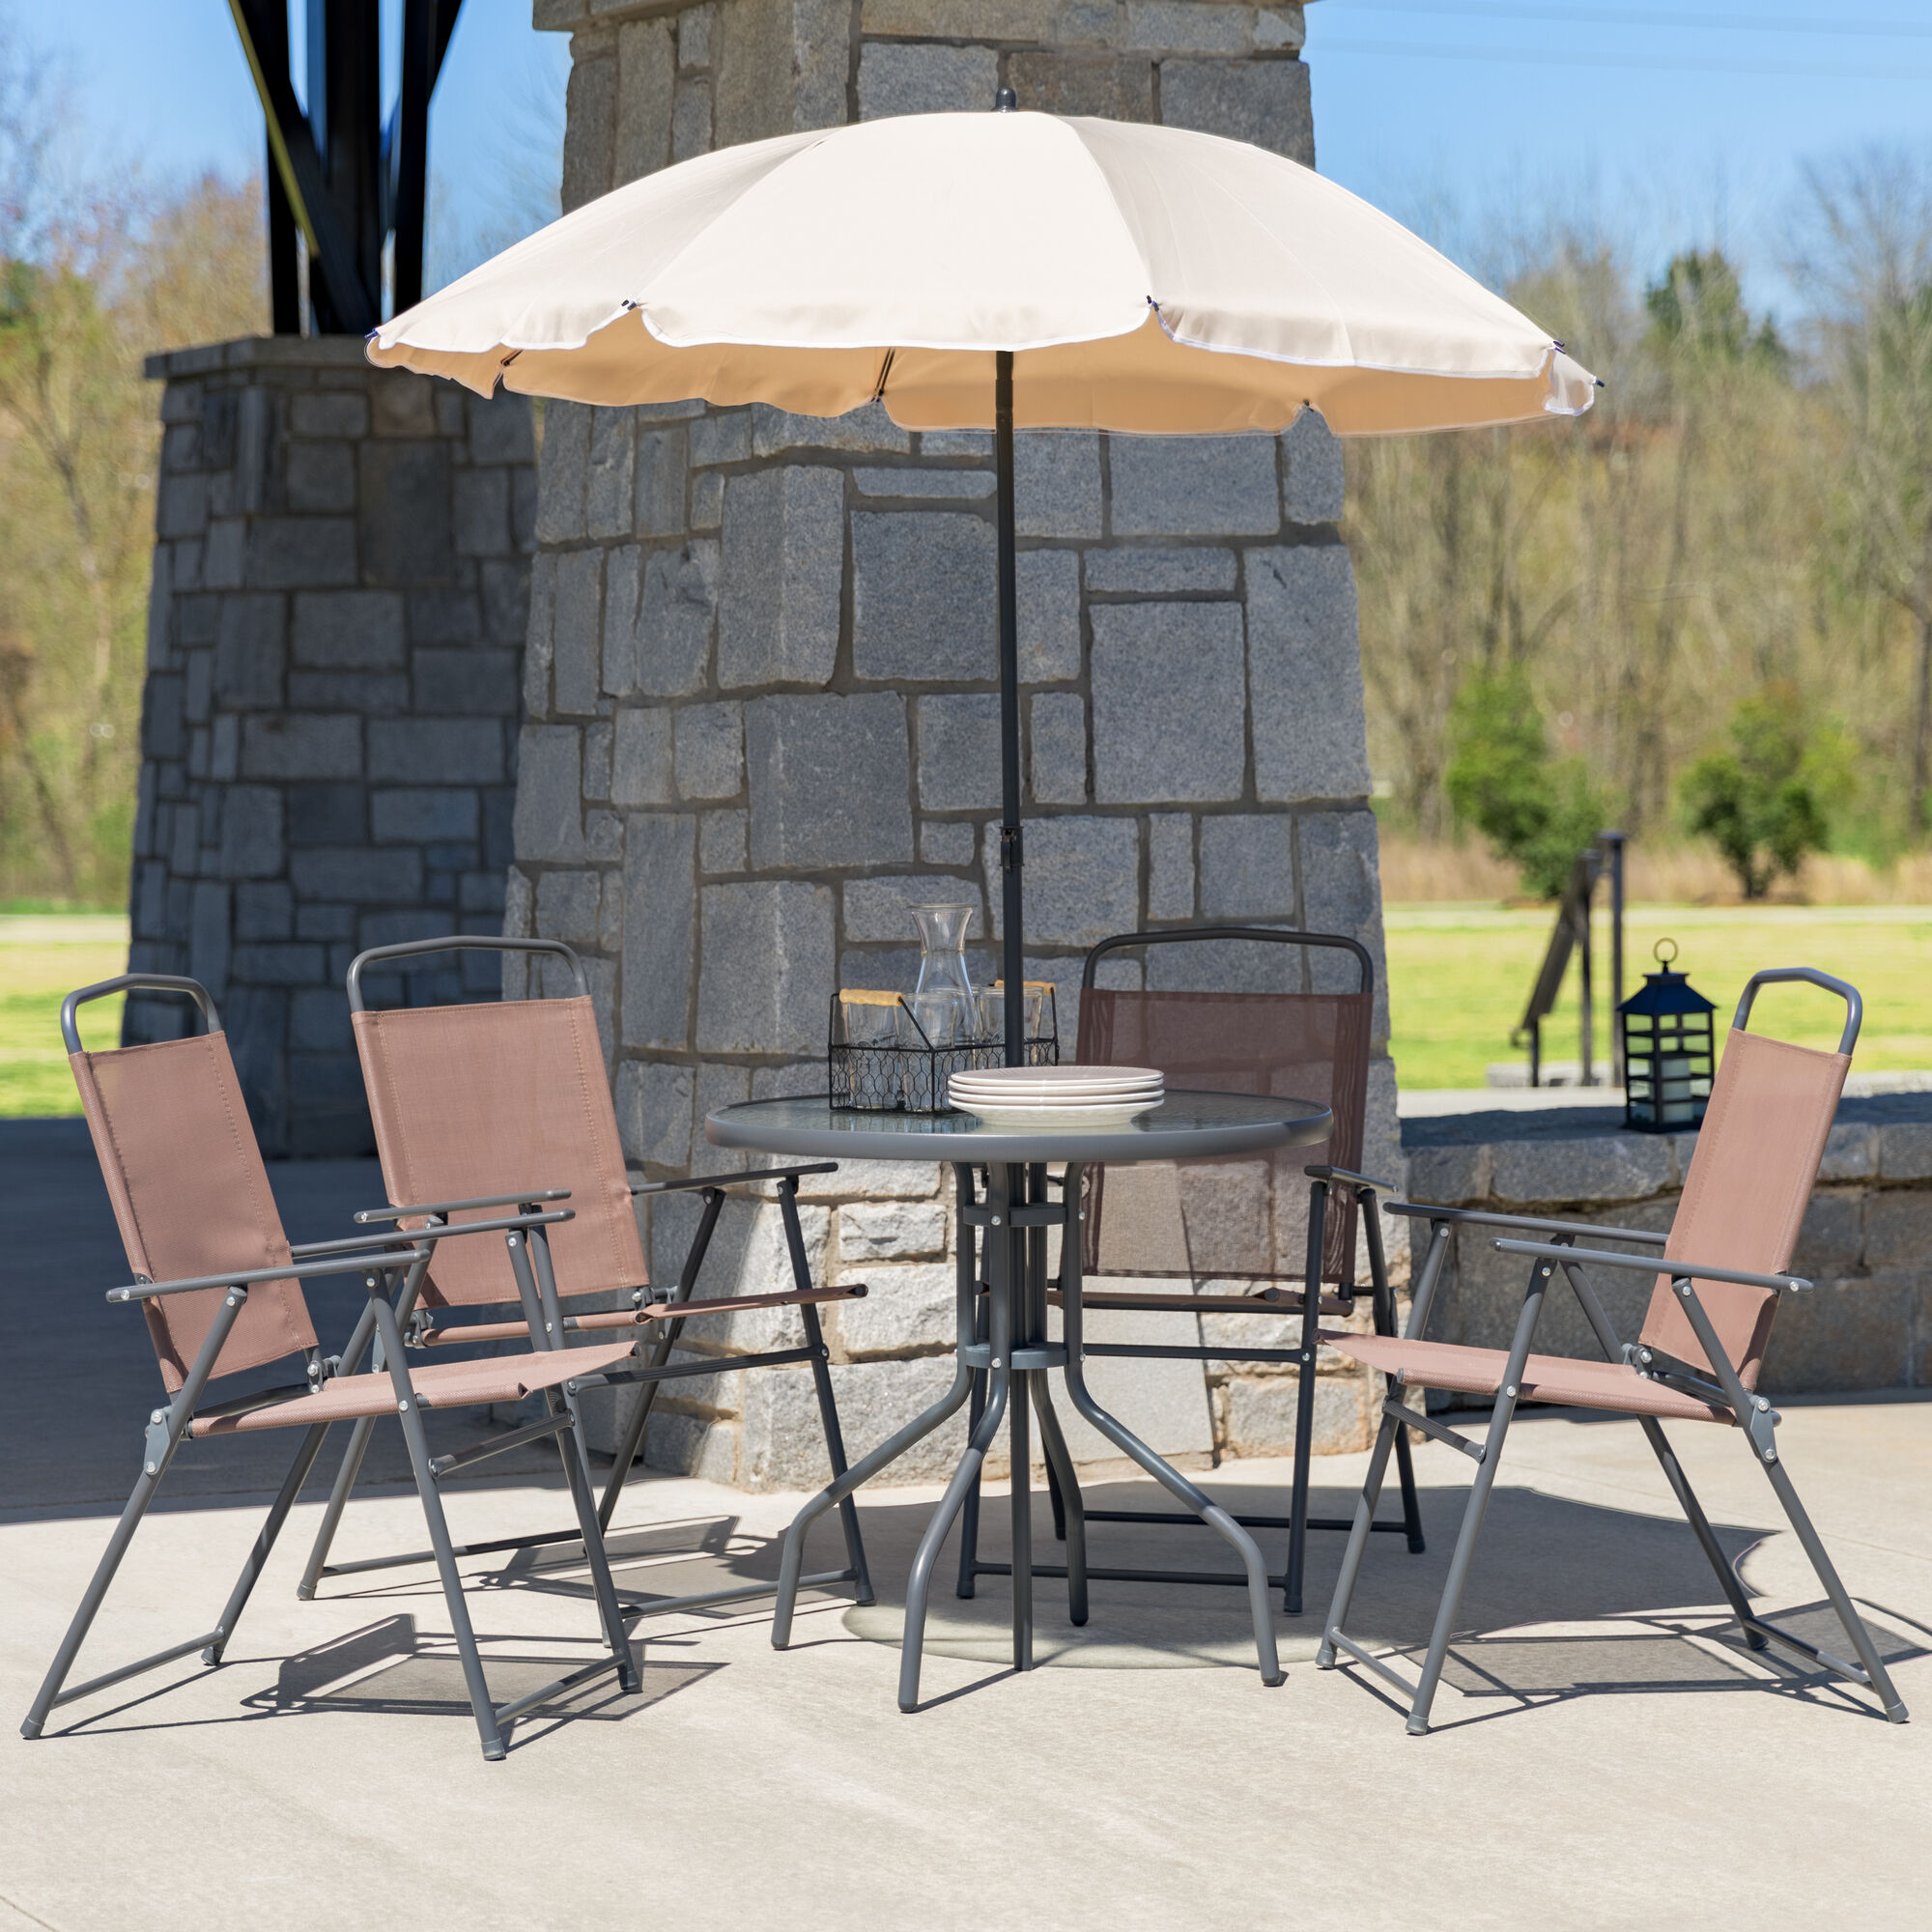 Phenomenal Nantucket 6 Piece Brown Patio Garden Set With Table Tan Umbrella And 4 Folding Chairs Pdpeps Interior Chair Design Pdpepsorg